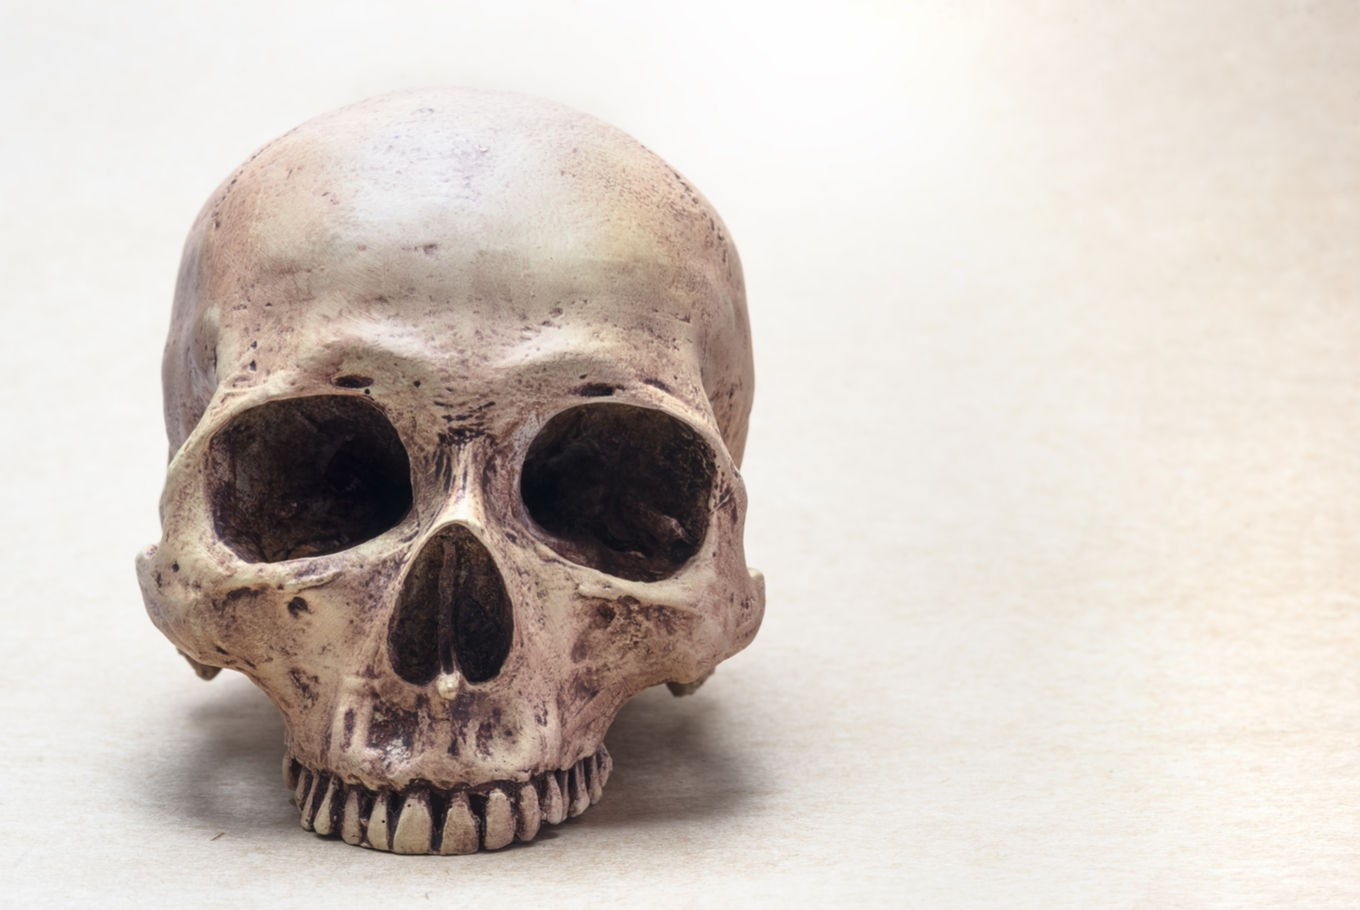 German accused of trying to smuggle human skulls from Papua